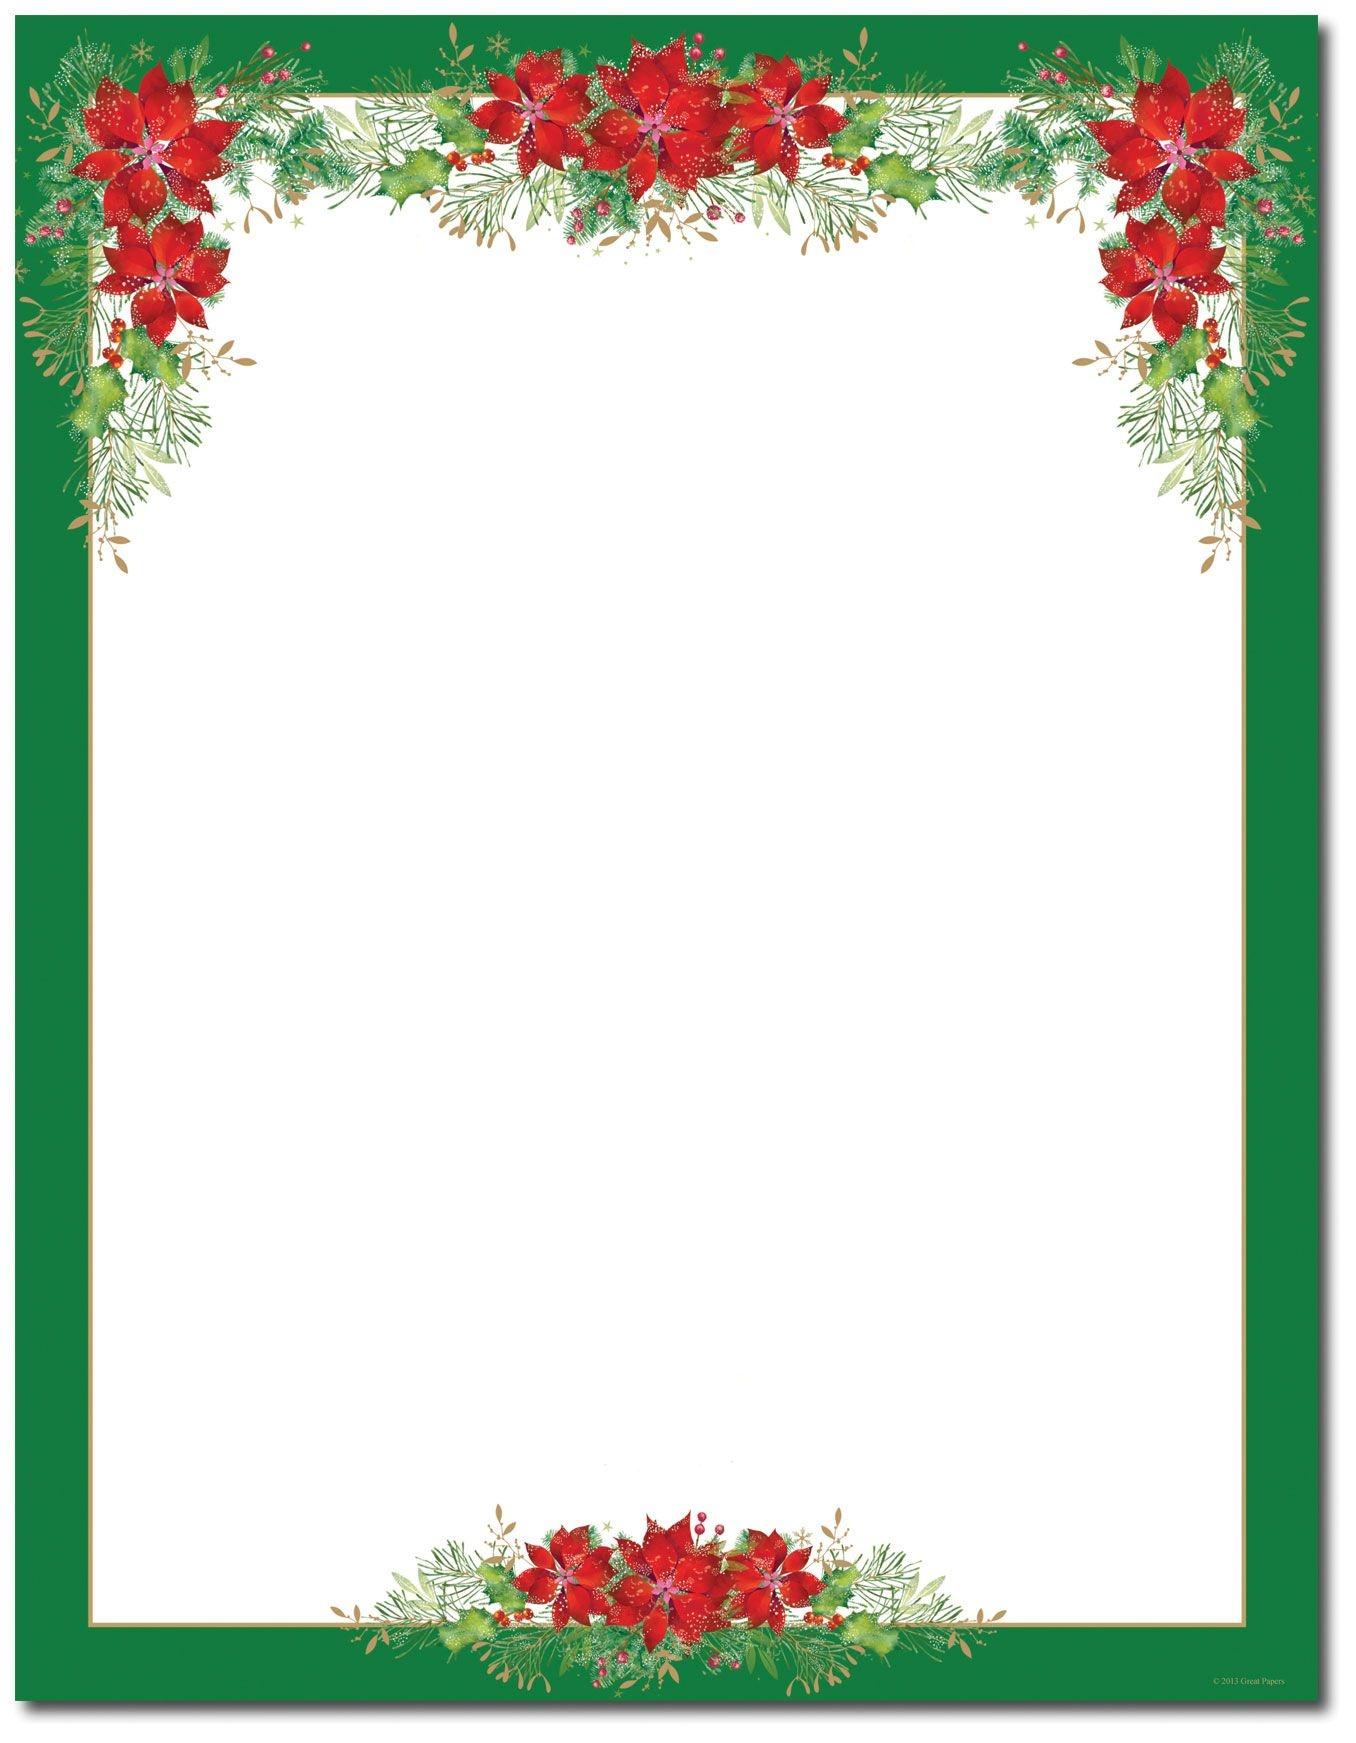 Poinsettia Valance Letterhead   Holiday Papers   Christmas Border - Free Printable Christmas Stationary Paper